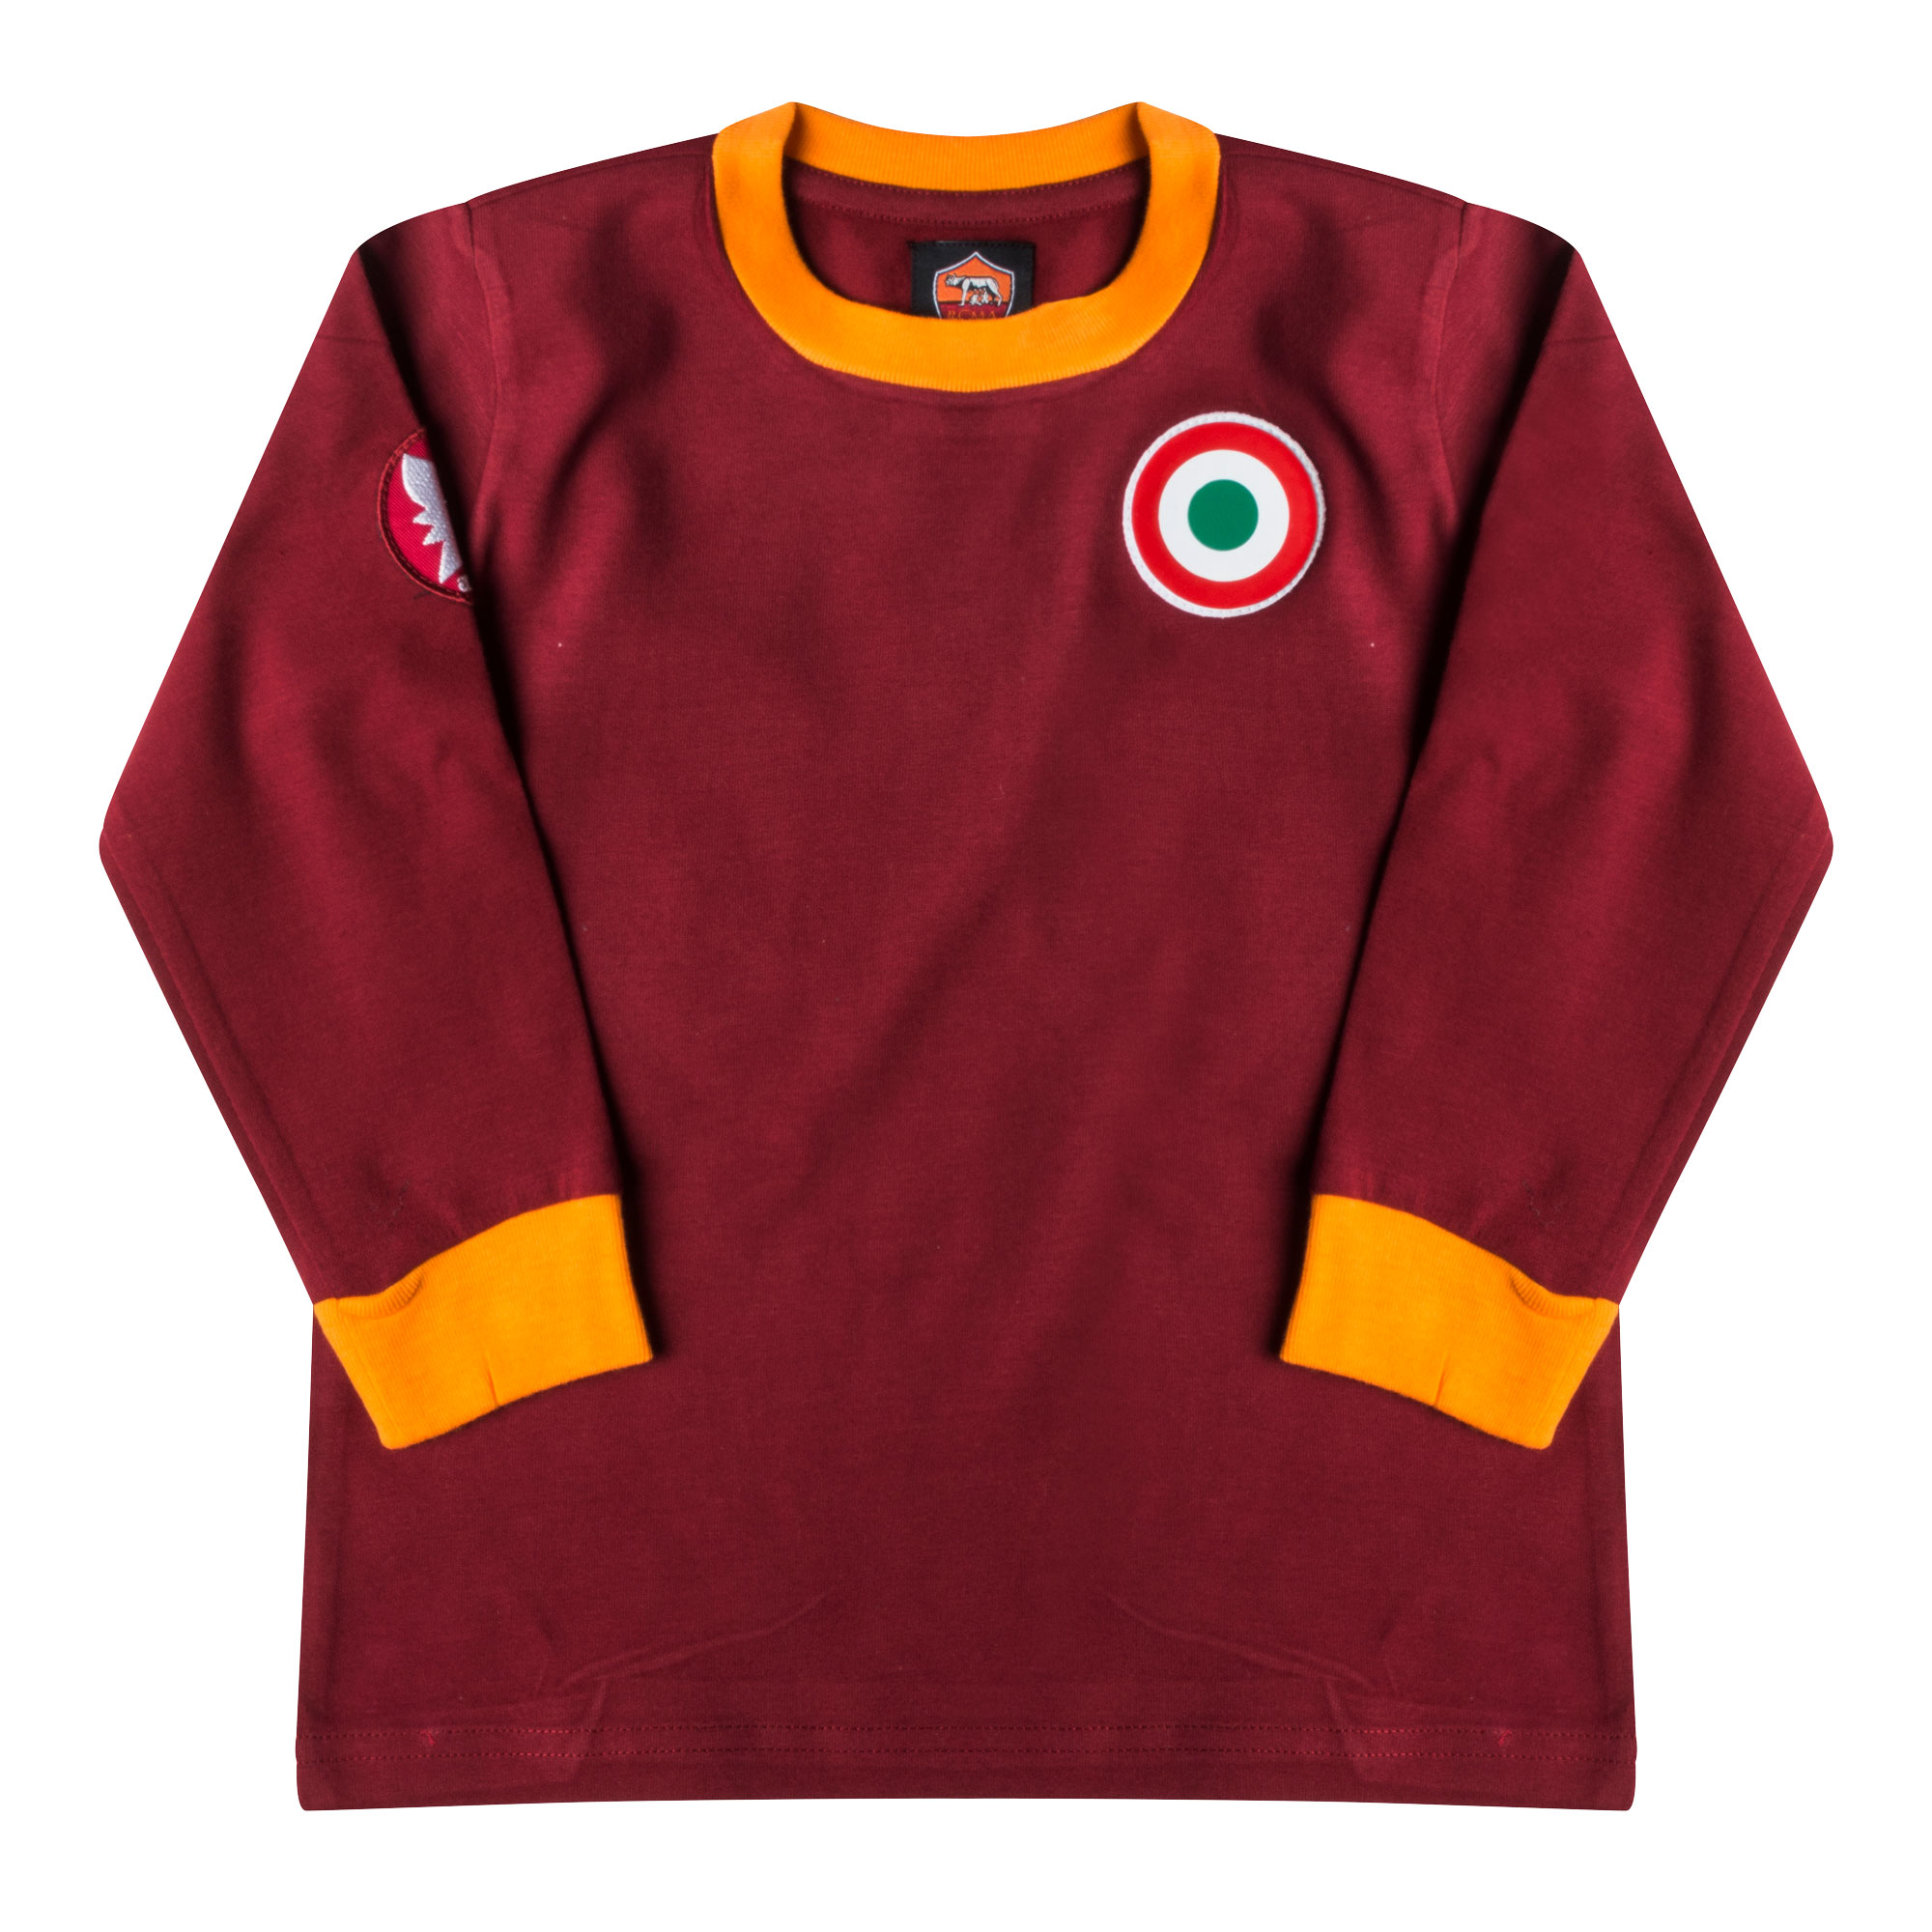 COPA AS Roma 'My First Football Shirt' Home Shirt - 86